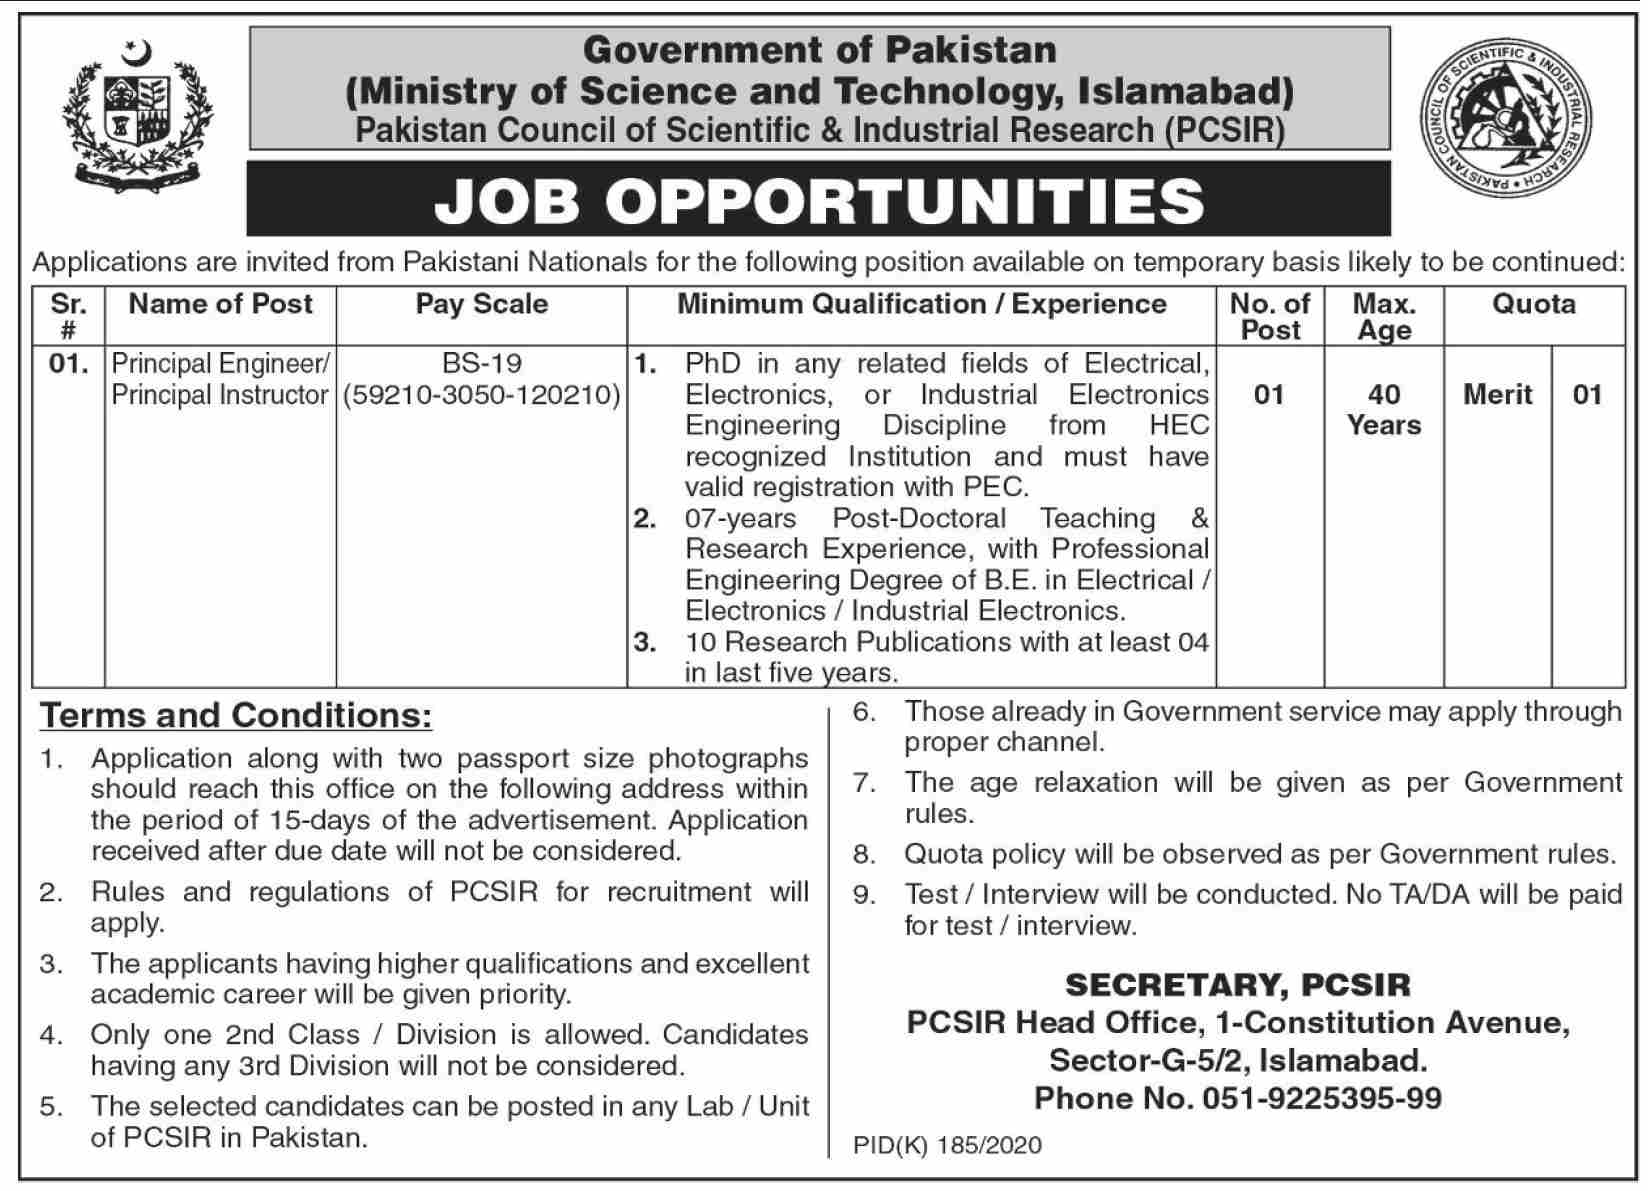 Government of Pakistan Ministry of Science and Technology Islamabad Jobs July 2020